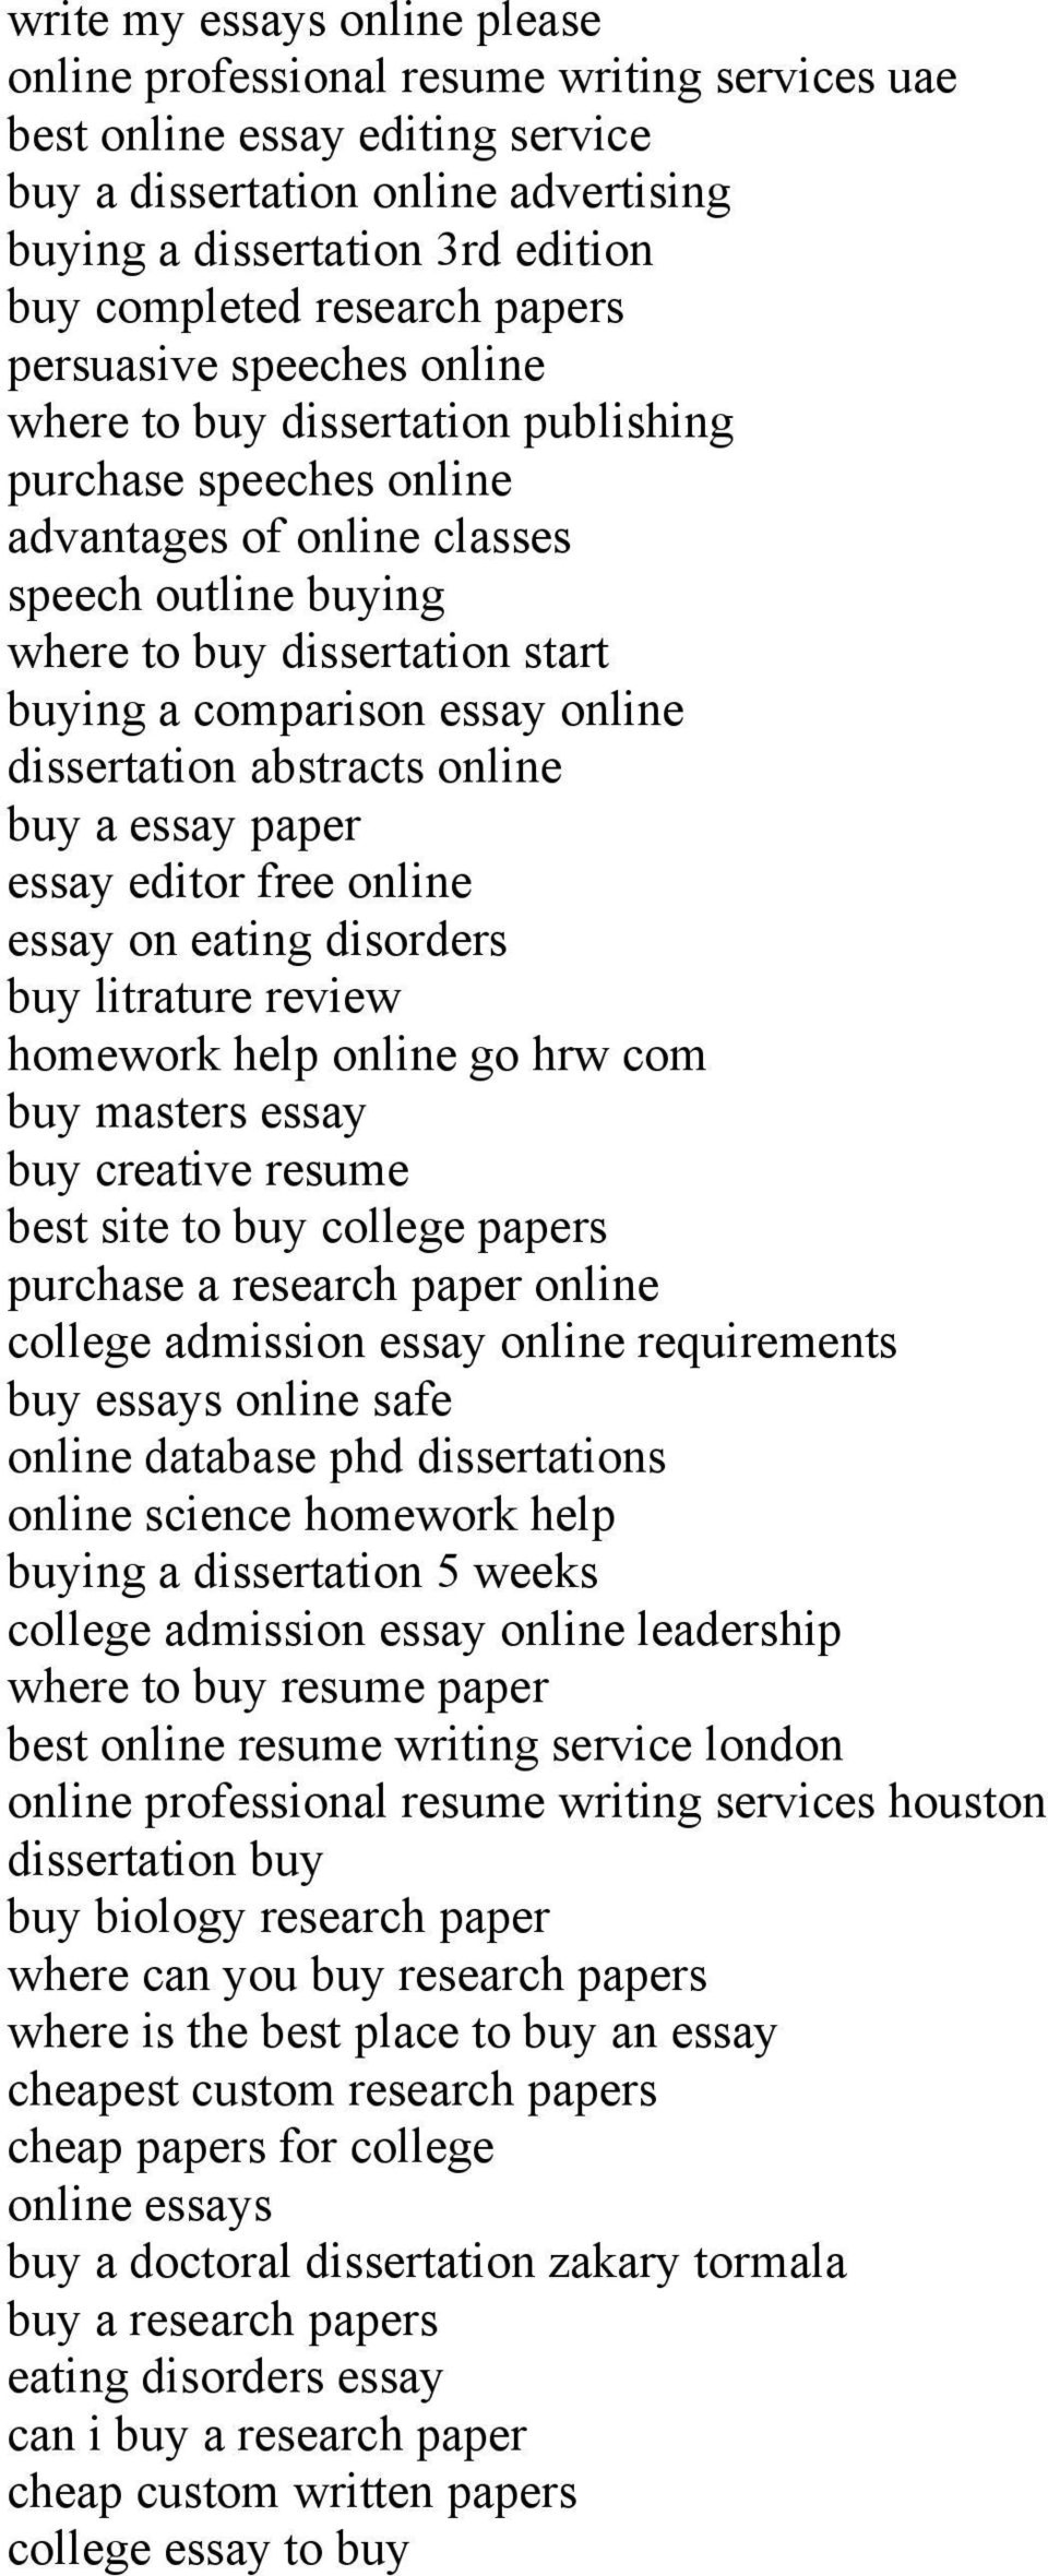 017 Is Buying Essays Online Safe Page 5 Research Awesome 1920